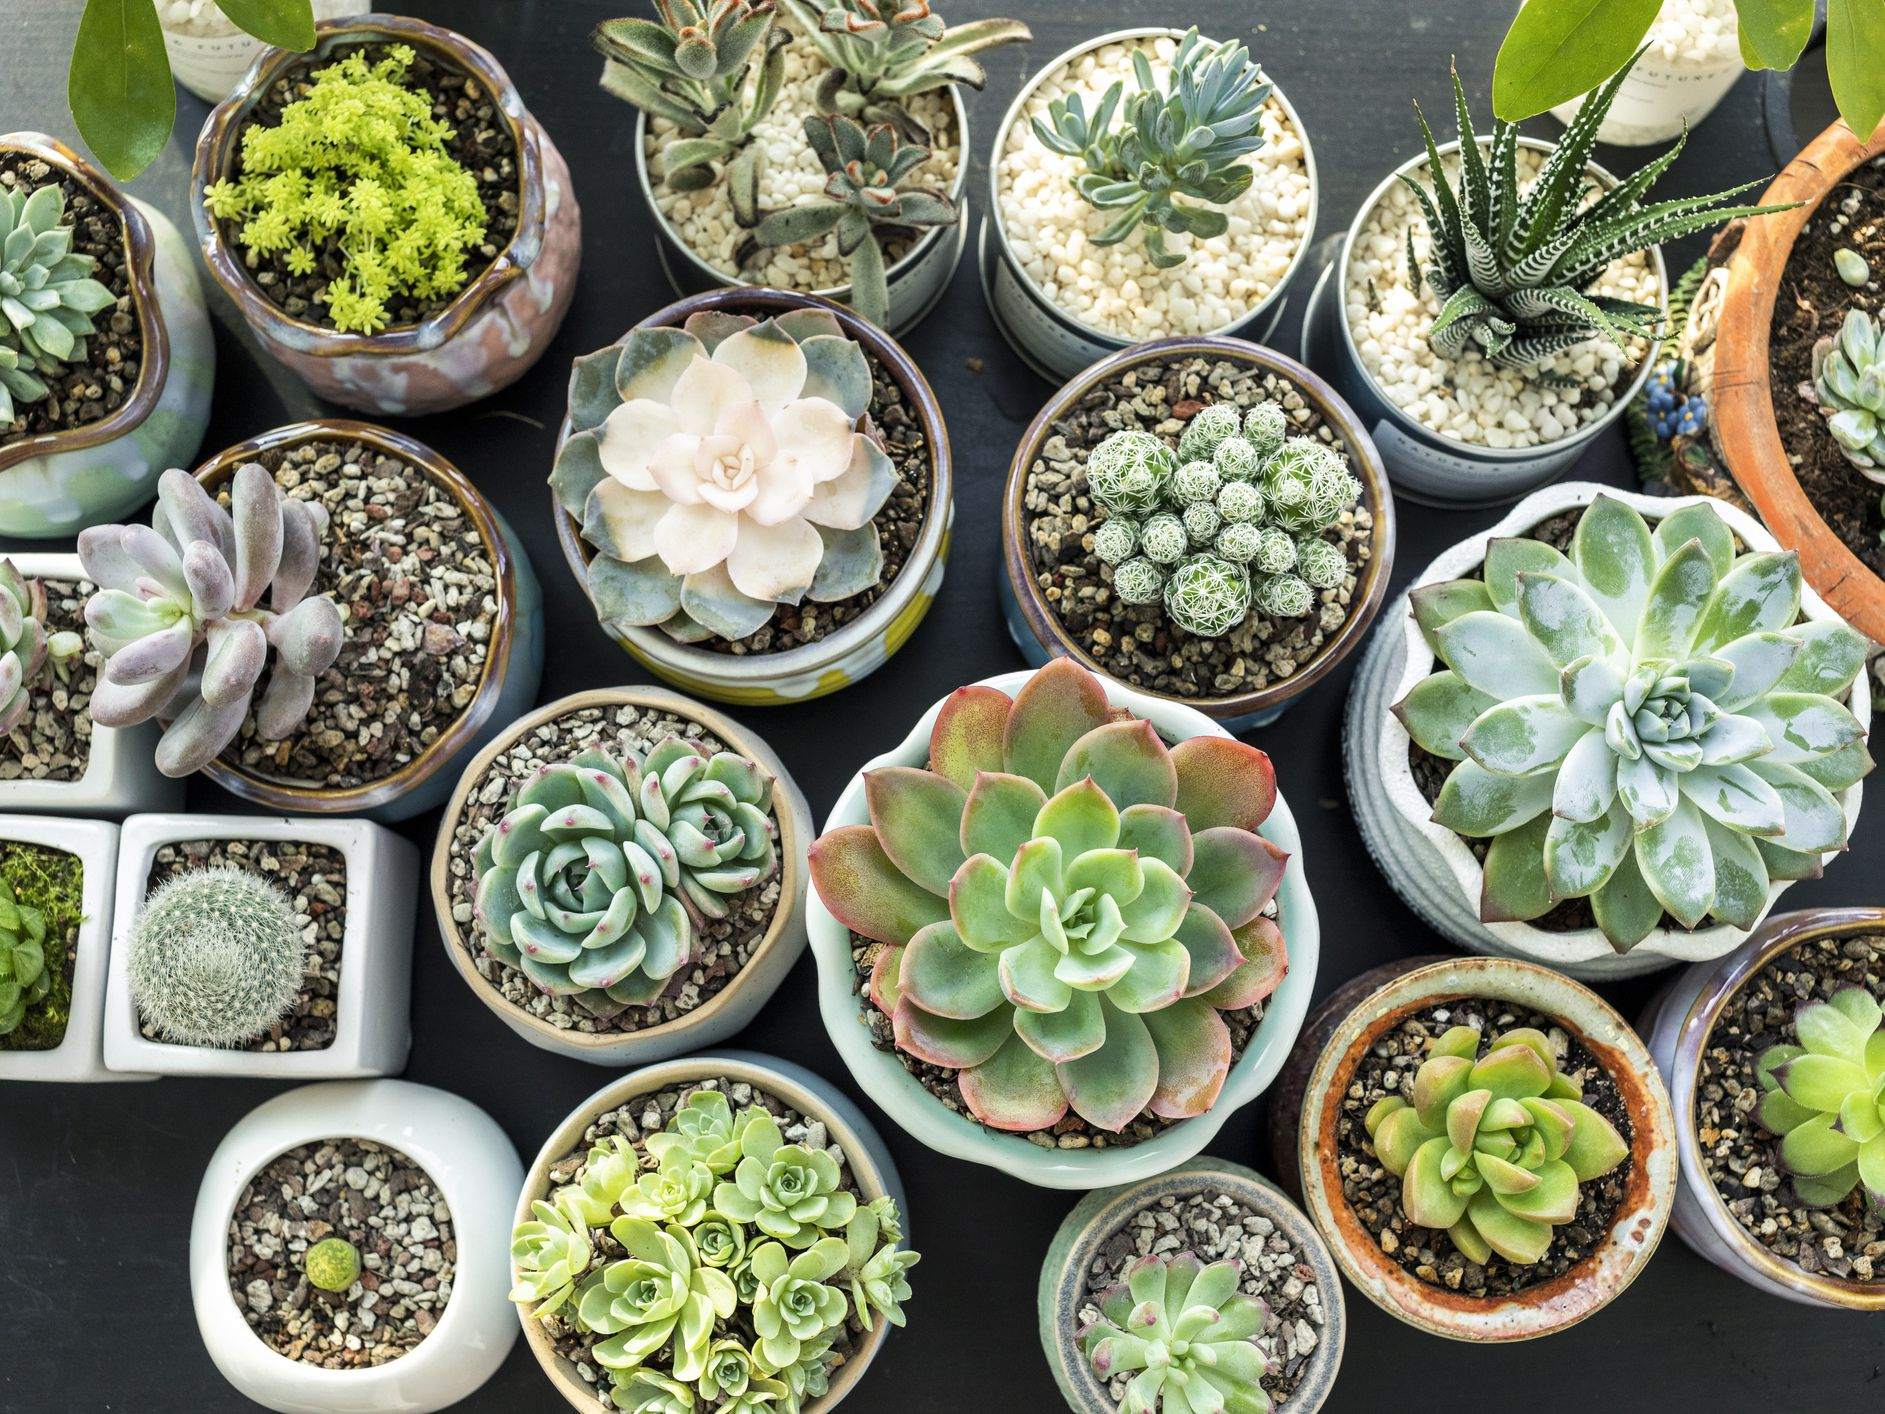 How To Propagate Succulents And Grow Your Indoor Garden